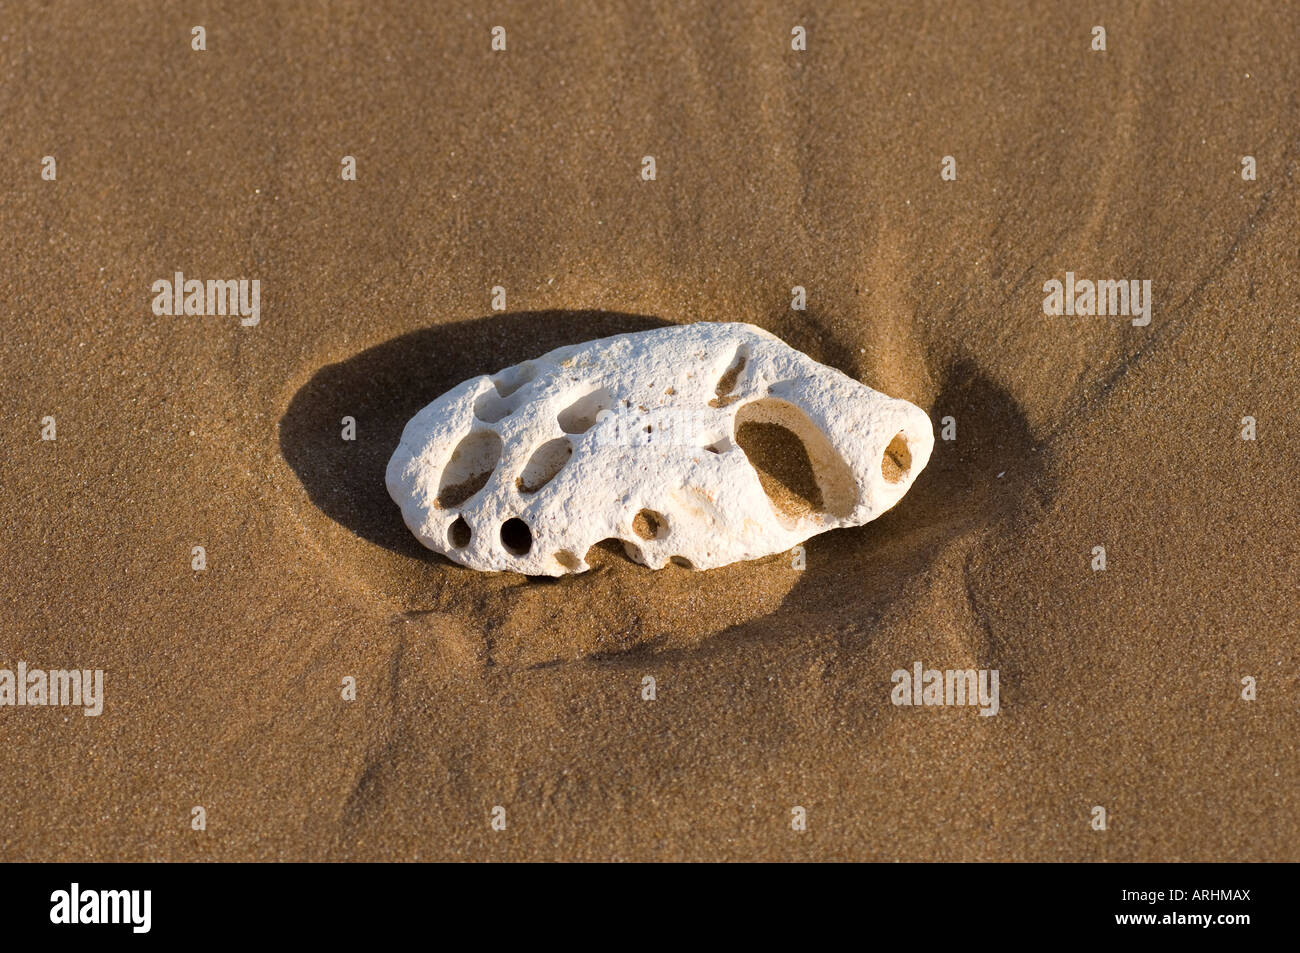 Eroded chalk stone on a sandy beach - Stock Image